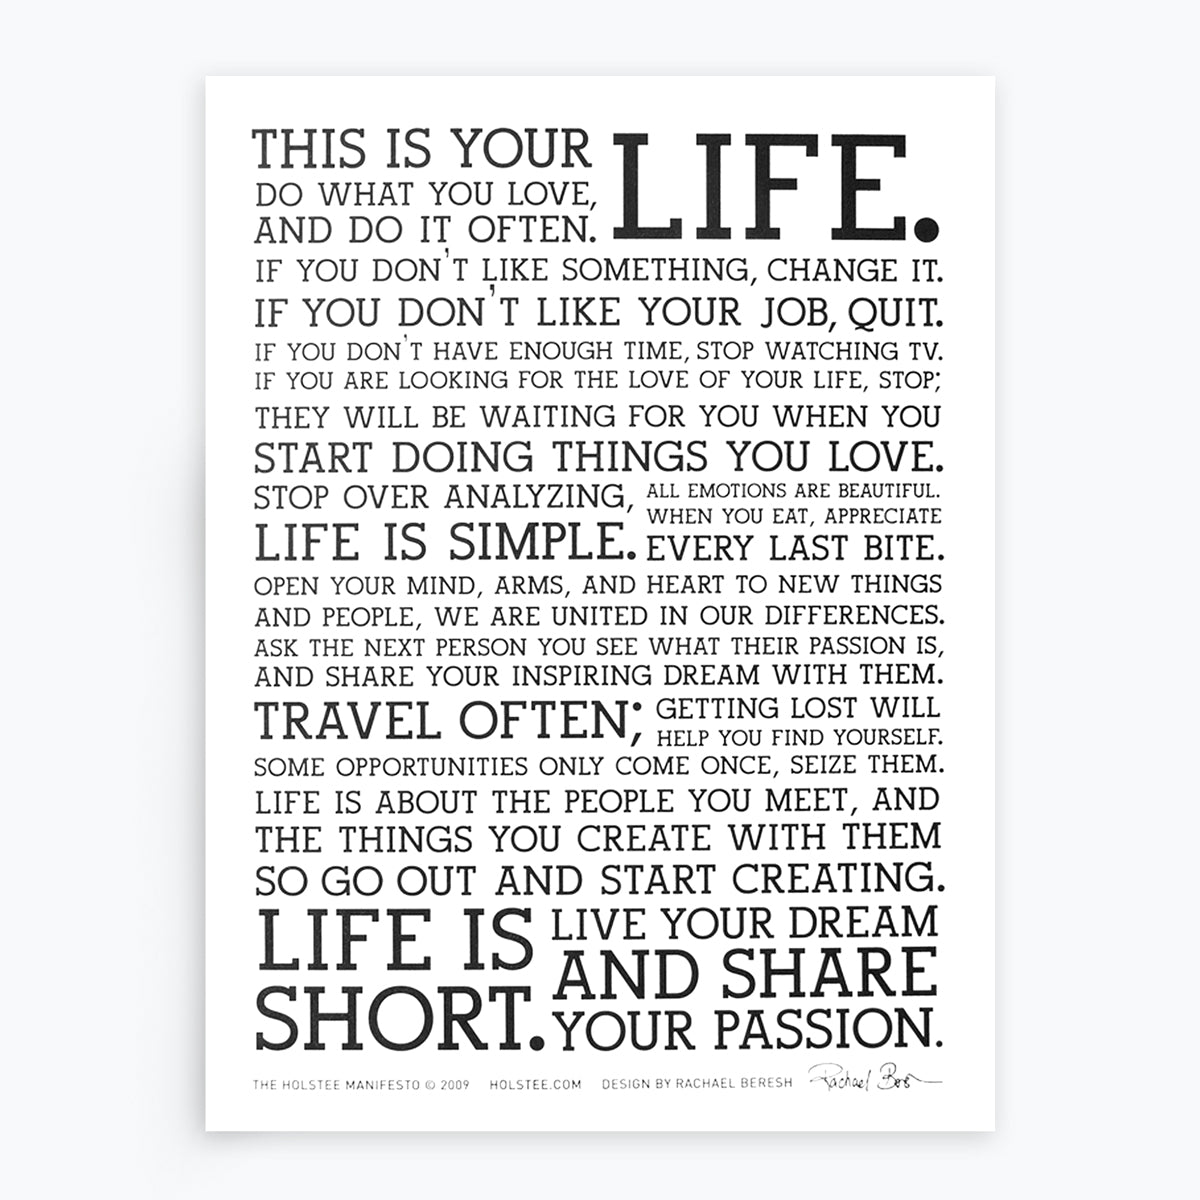 The Holstee Manifesto Original Letterpress Poster This Is Your